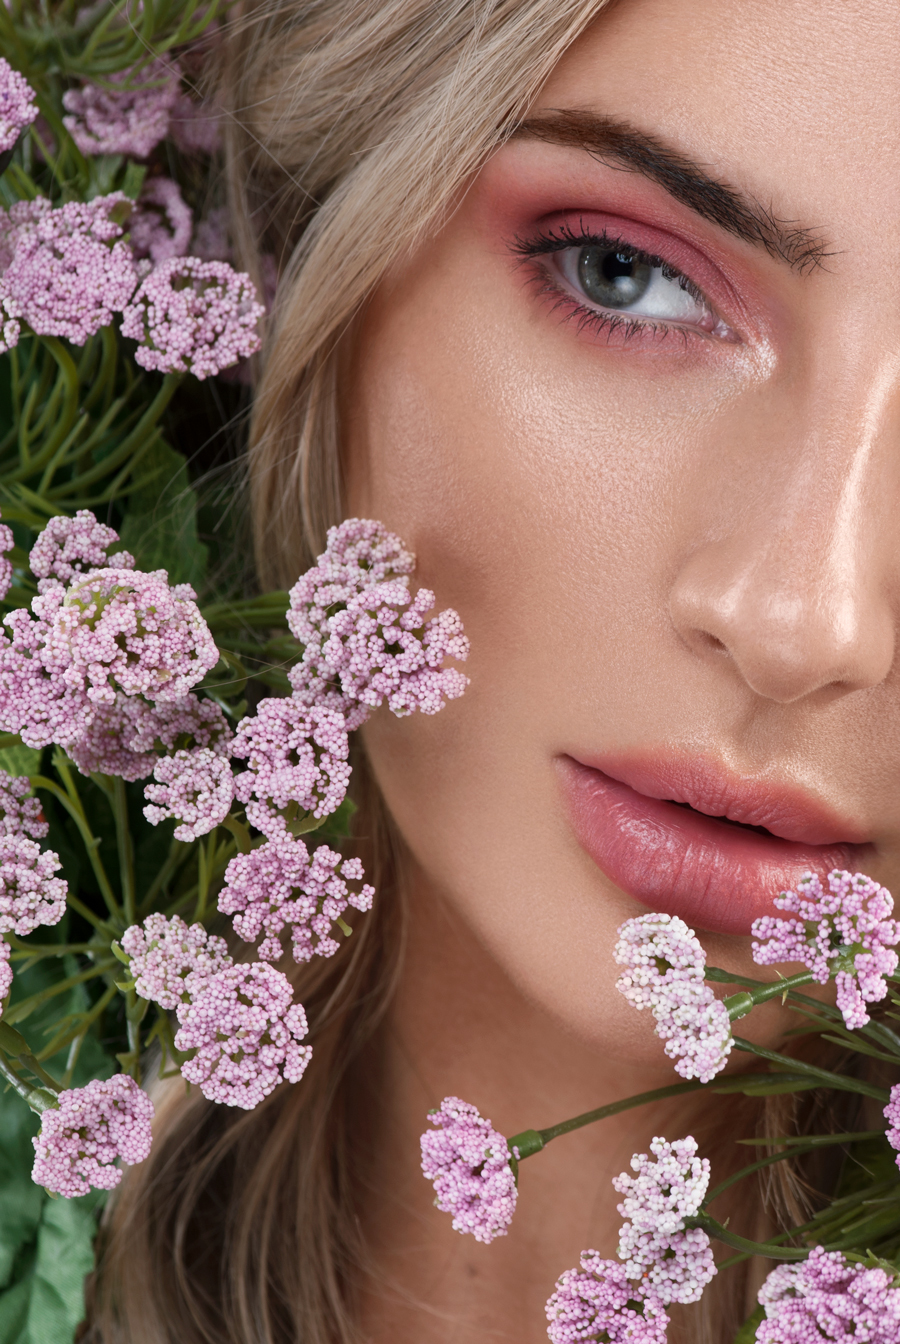 Floral Beauty Retouch / Post processing by Claire Rees Design / Uploaded 6th May 2019 @ 12:20 AM